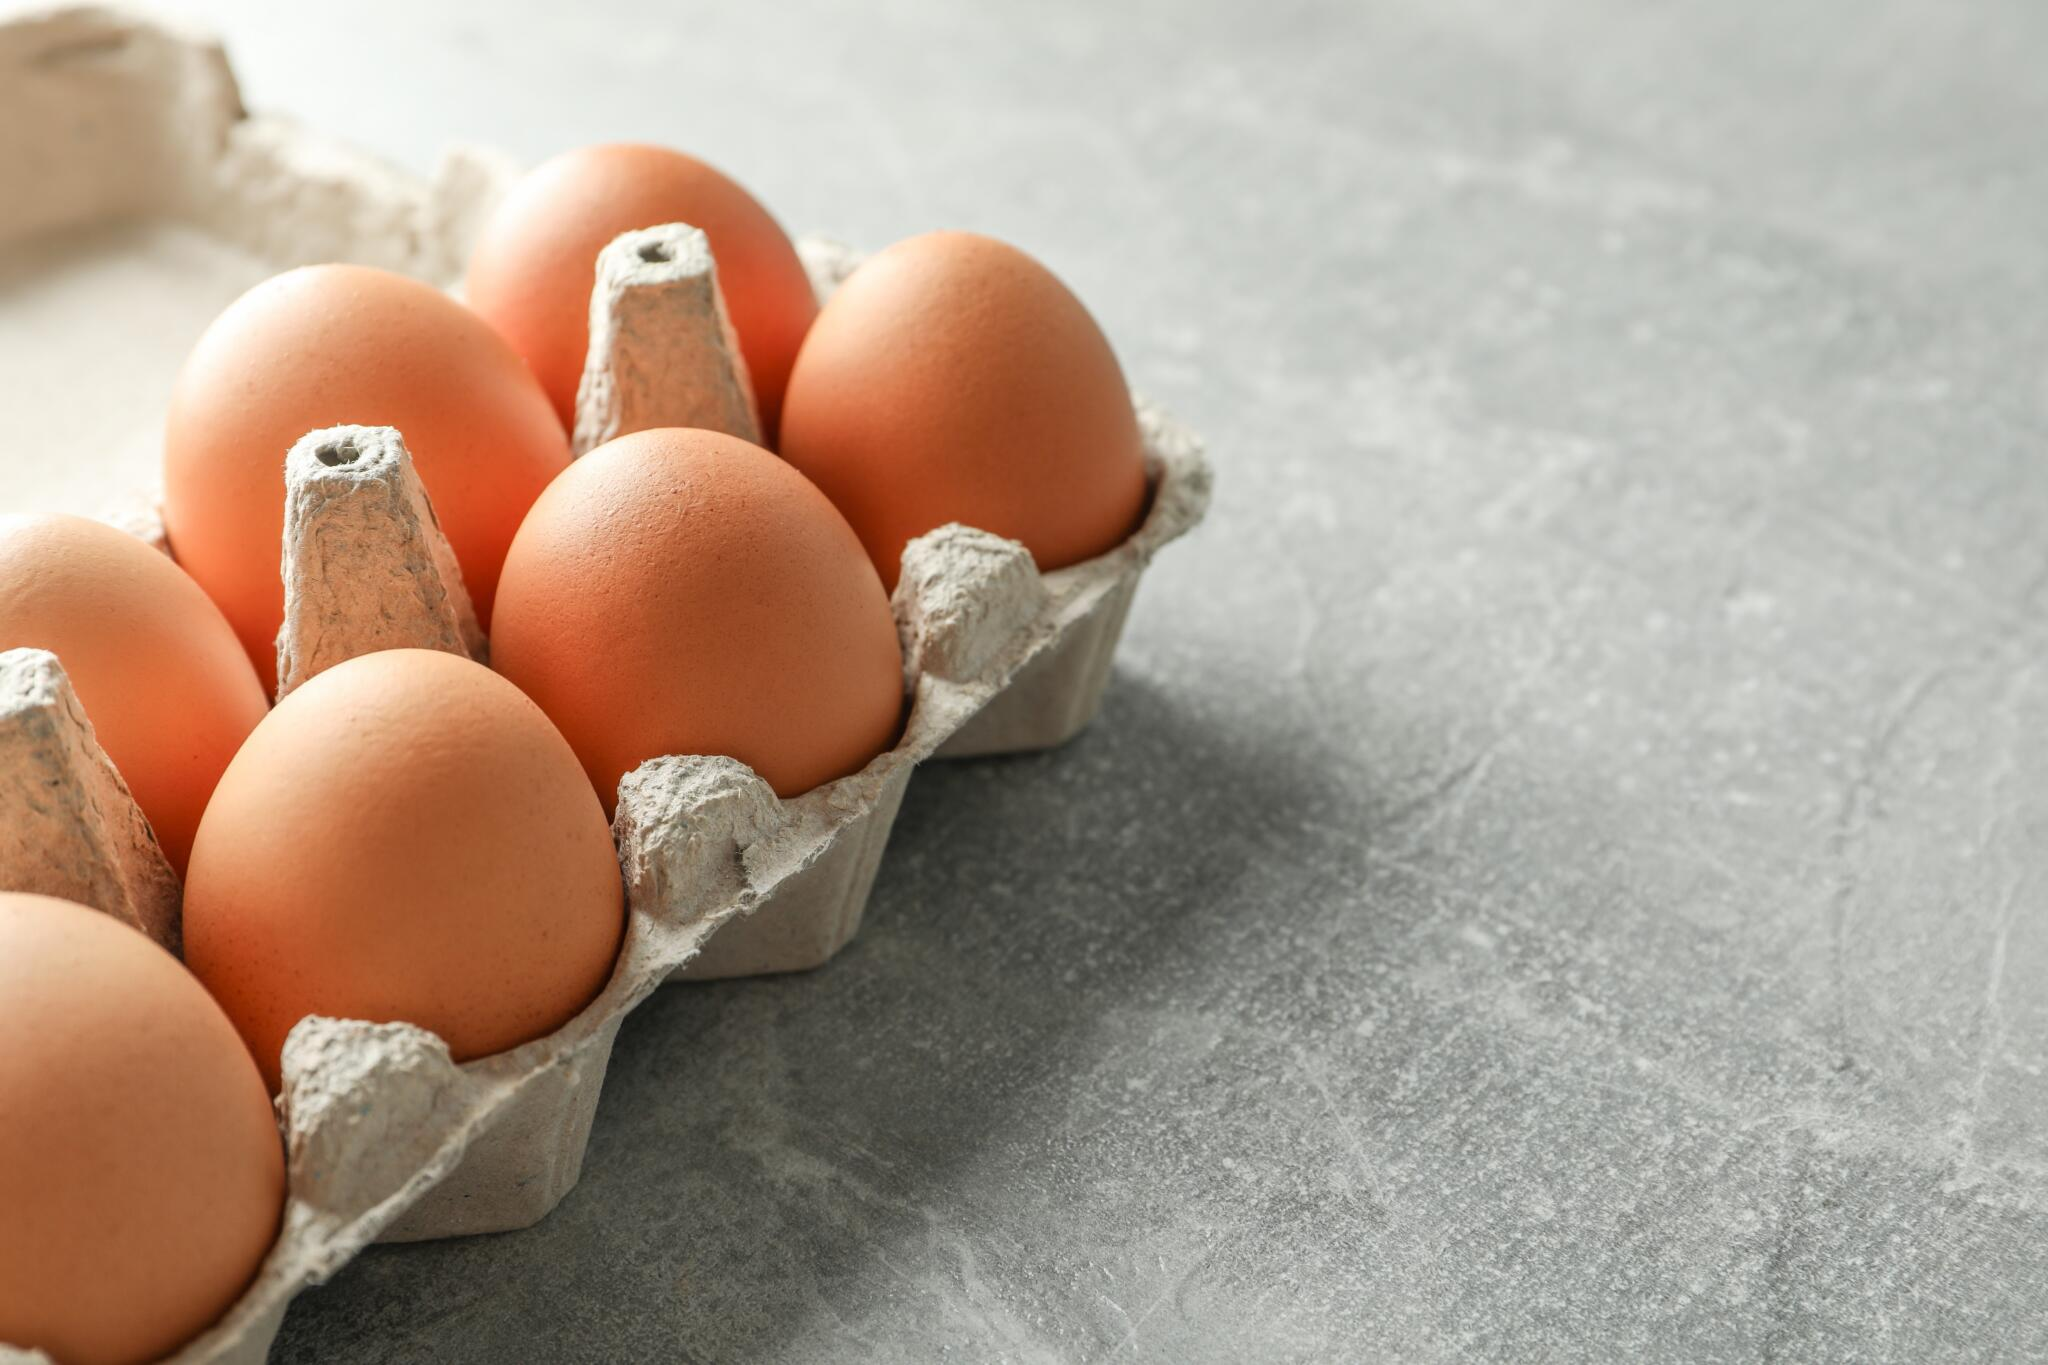 Tips for Baking Without Eggs